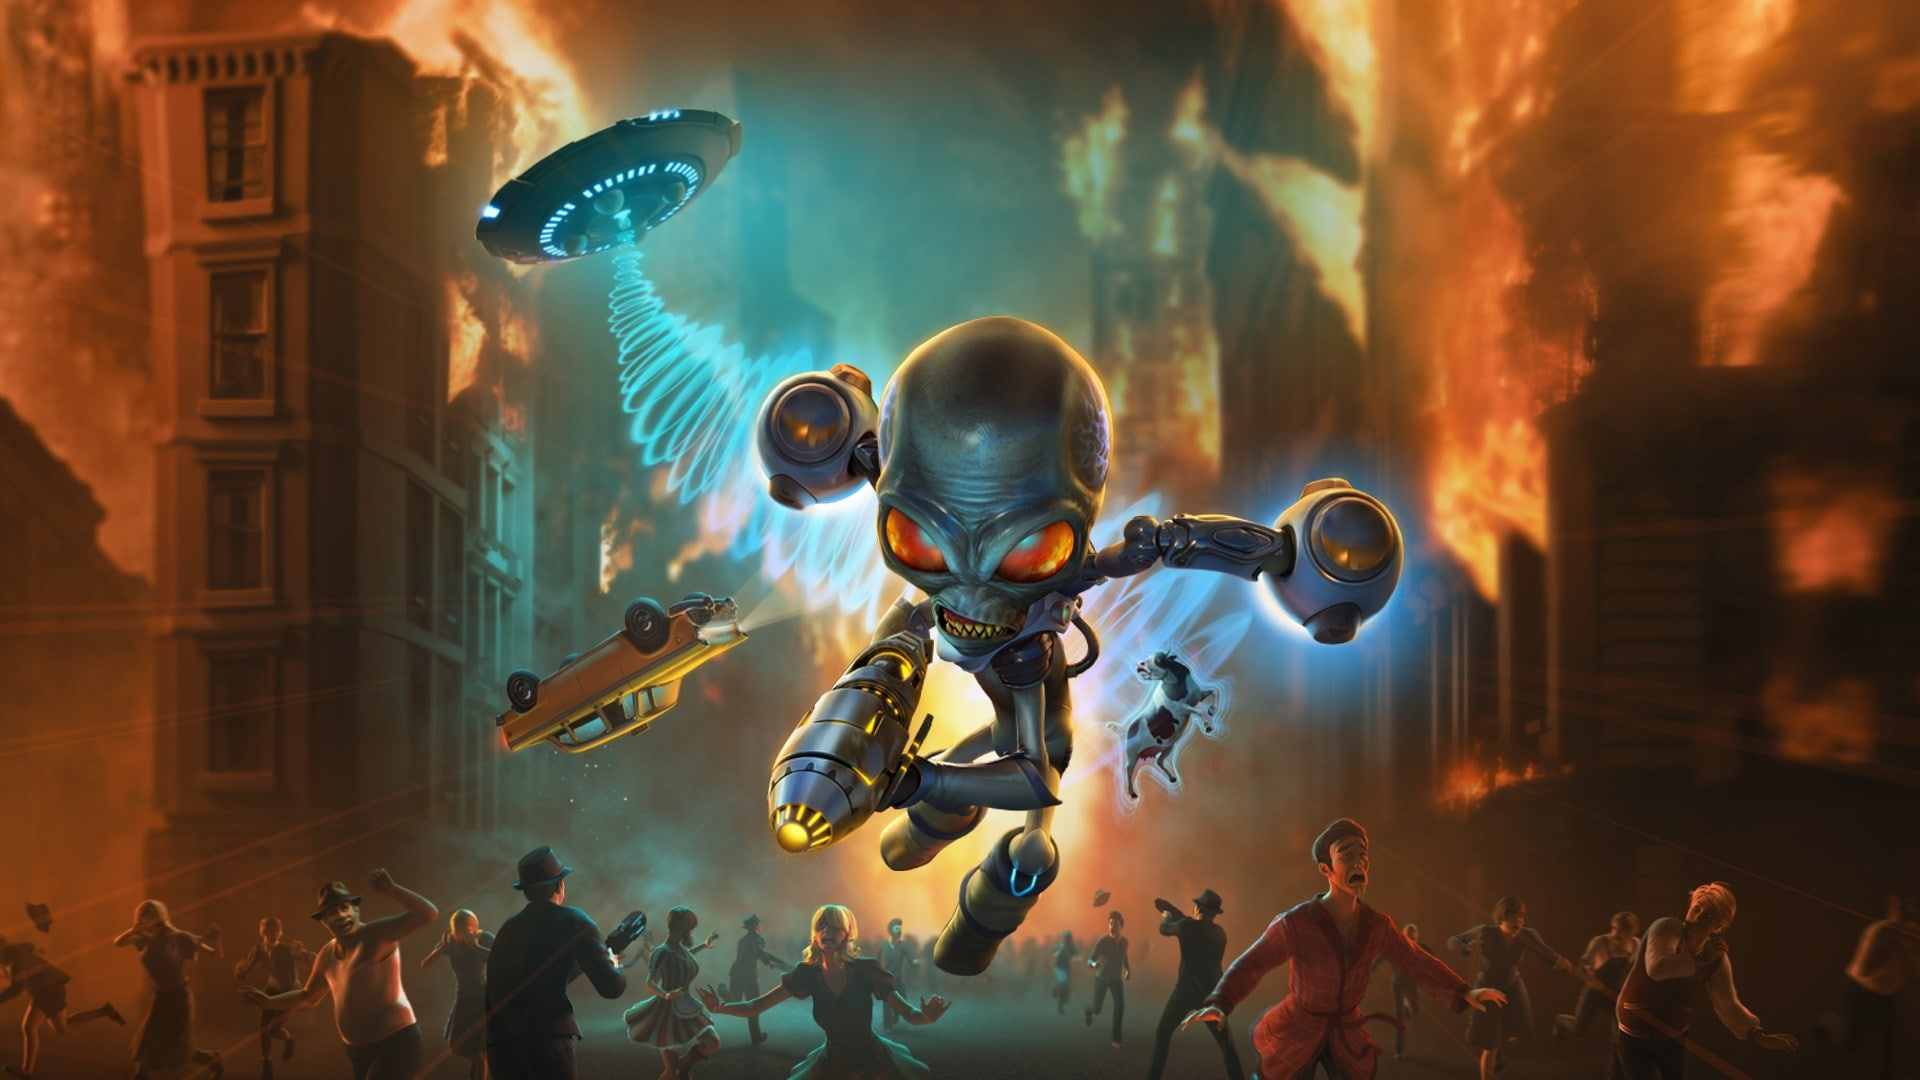 Destroy All Humans Artwork Alien